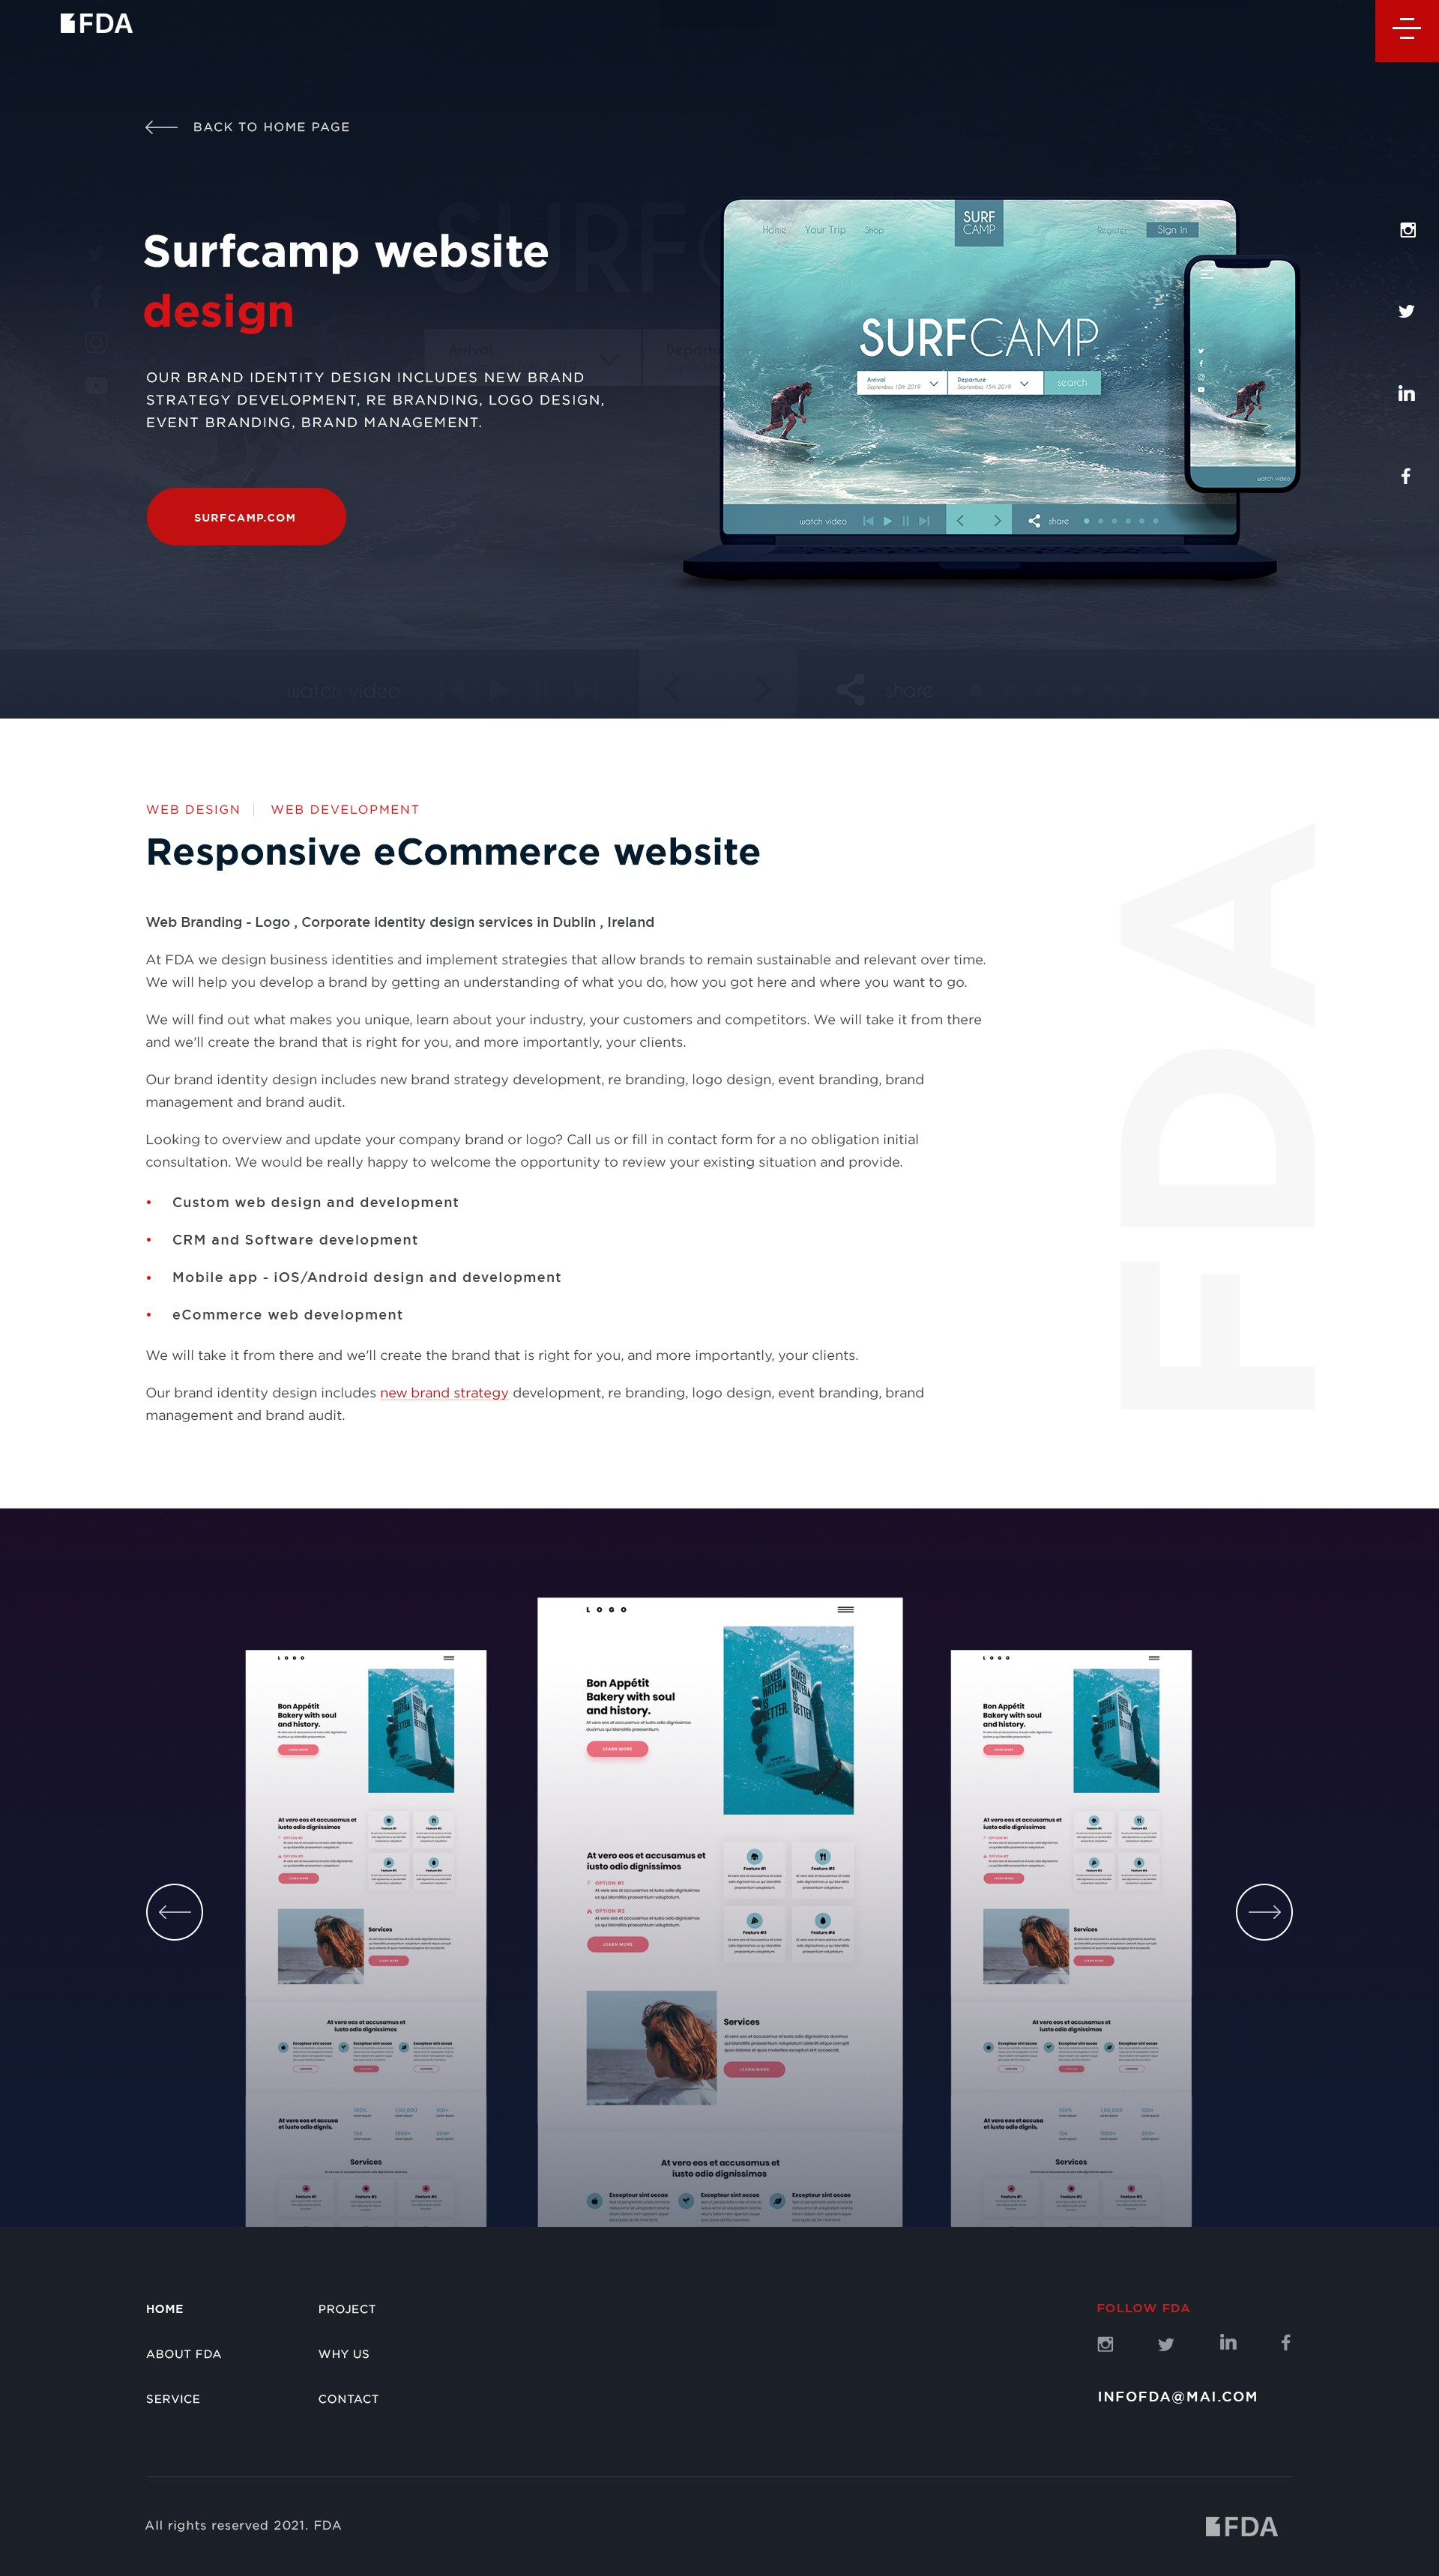 FDA_04_Projects_1.0